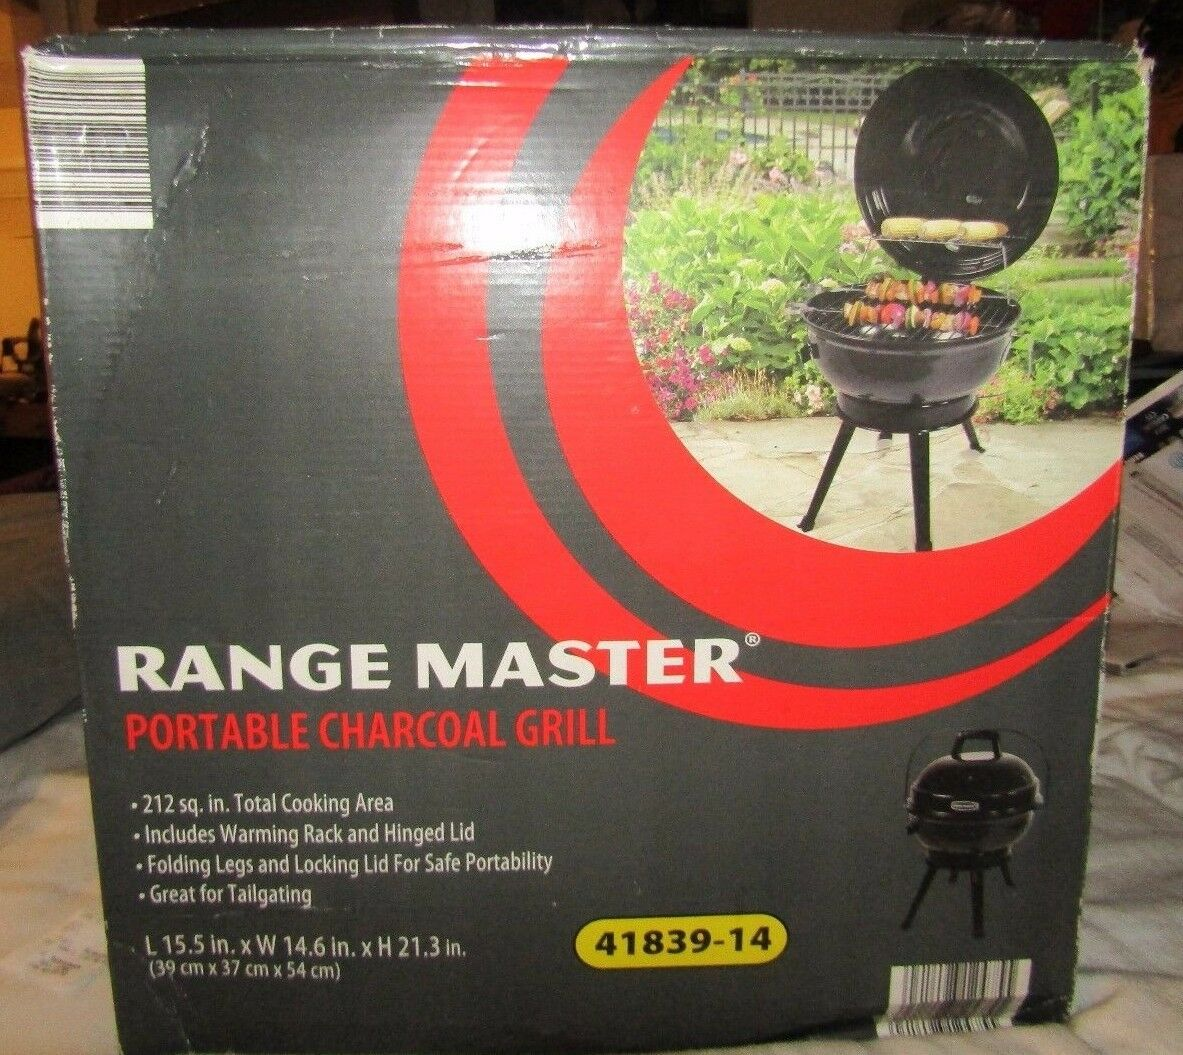 range master charcoal grill portable tailgate backyard outdoor